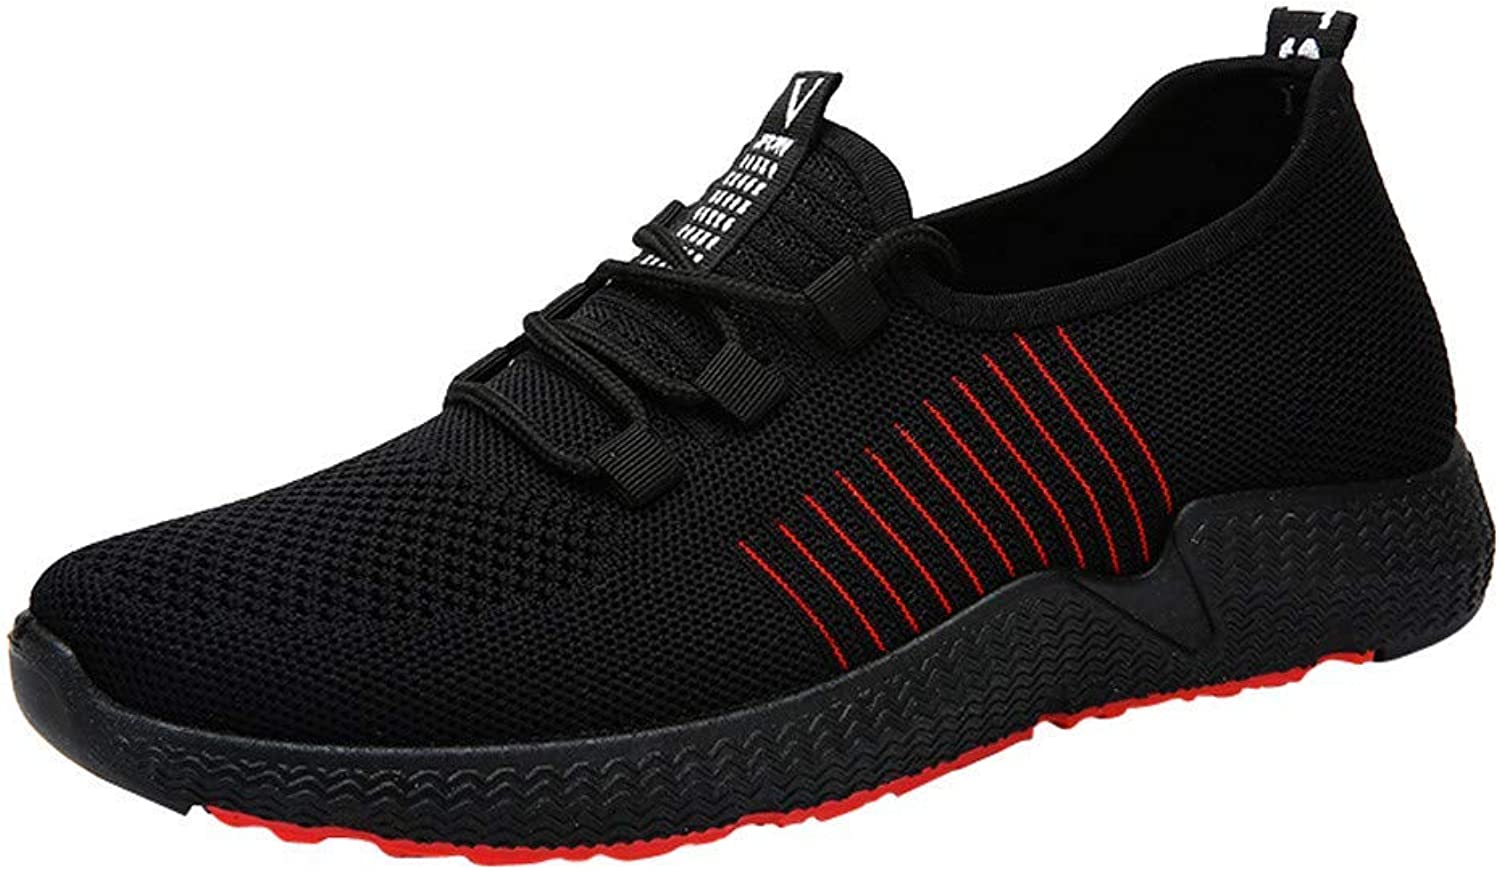 Wallhewb Sneakers for Men, Caopixx Men's Running shoes Fitness Casual Mesh Soft Lightweight Breathable shoes Handsome Leg Length Soft Comfortable Skinny Joker Highten Increasing Black US 8.5 shoes